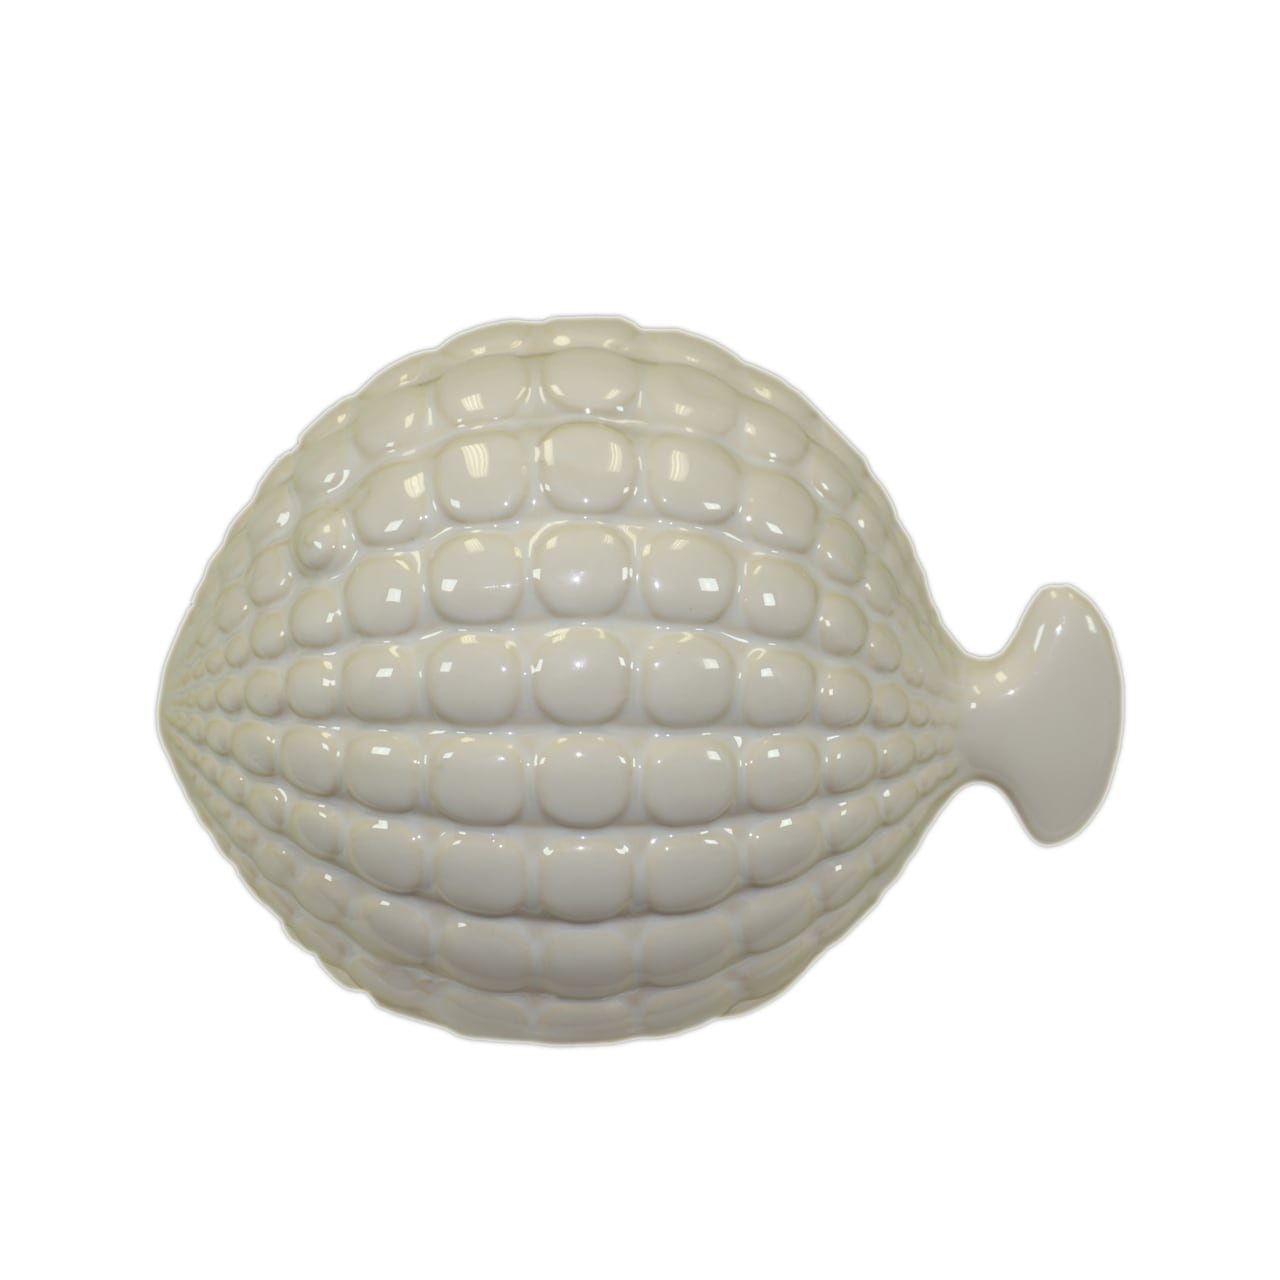 Urban Trends Collection Small White Ceramic Fish (CeramicFinish WhiteDimensions 6.5 inches high x 9 inches wide x 5 inches deep UPC 877101720218For Decorative Purposes OnlyDoes Not Hold Water)